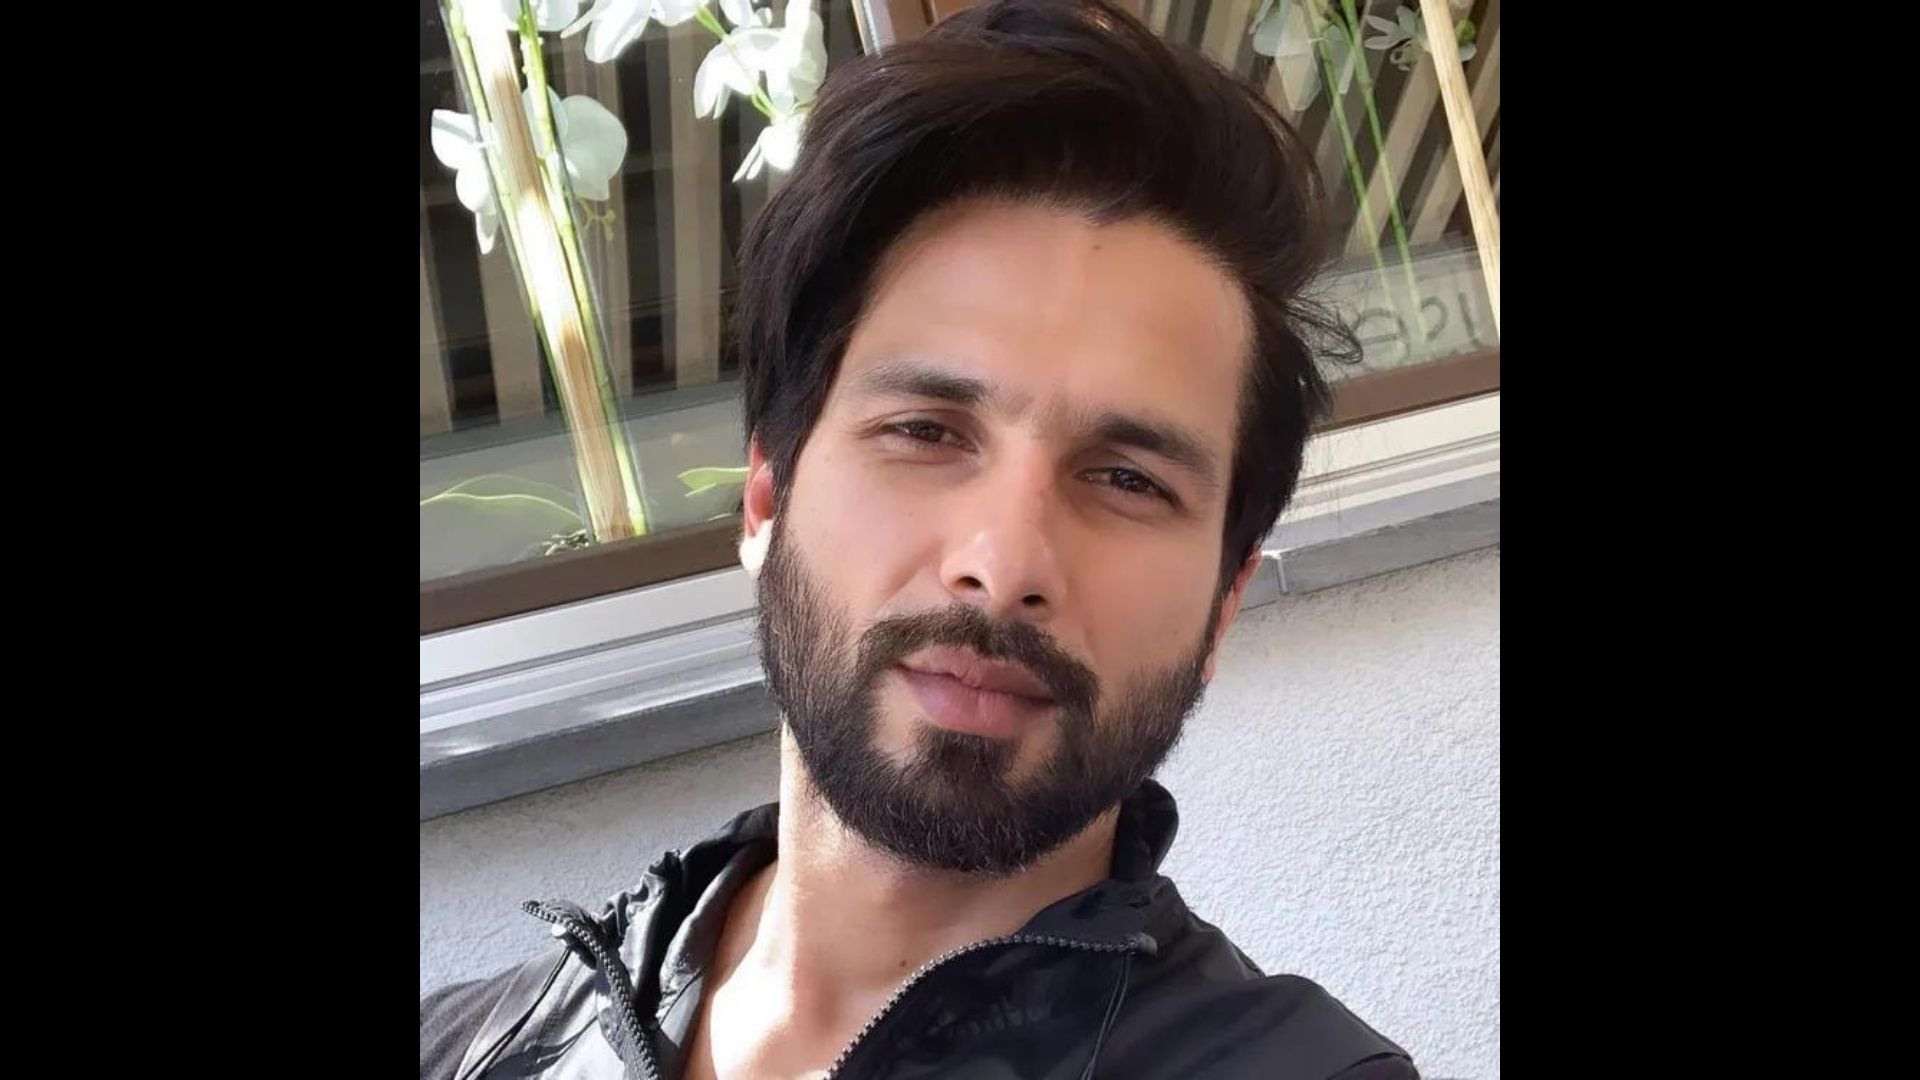 Shahid Kapoor To Don Olive Greens In Bull; Actor To Play A Paratrooper In Aditya Nimbalkar Directorial Film